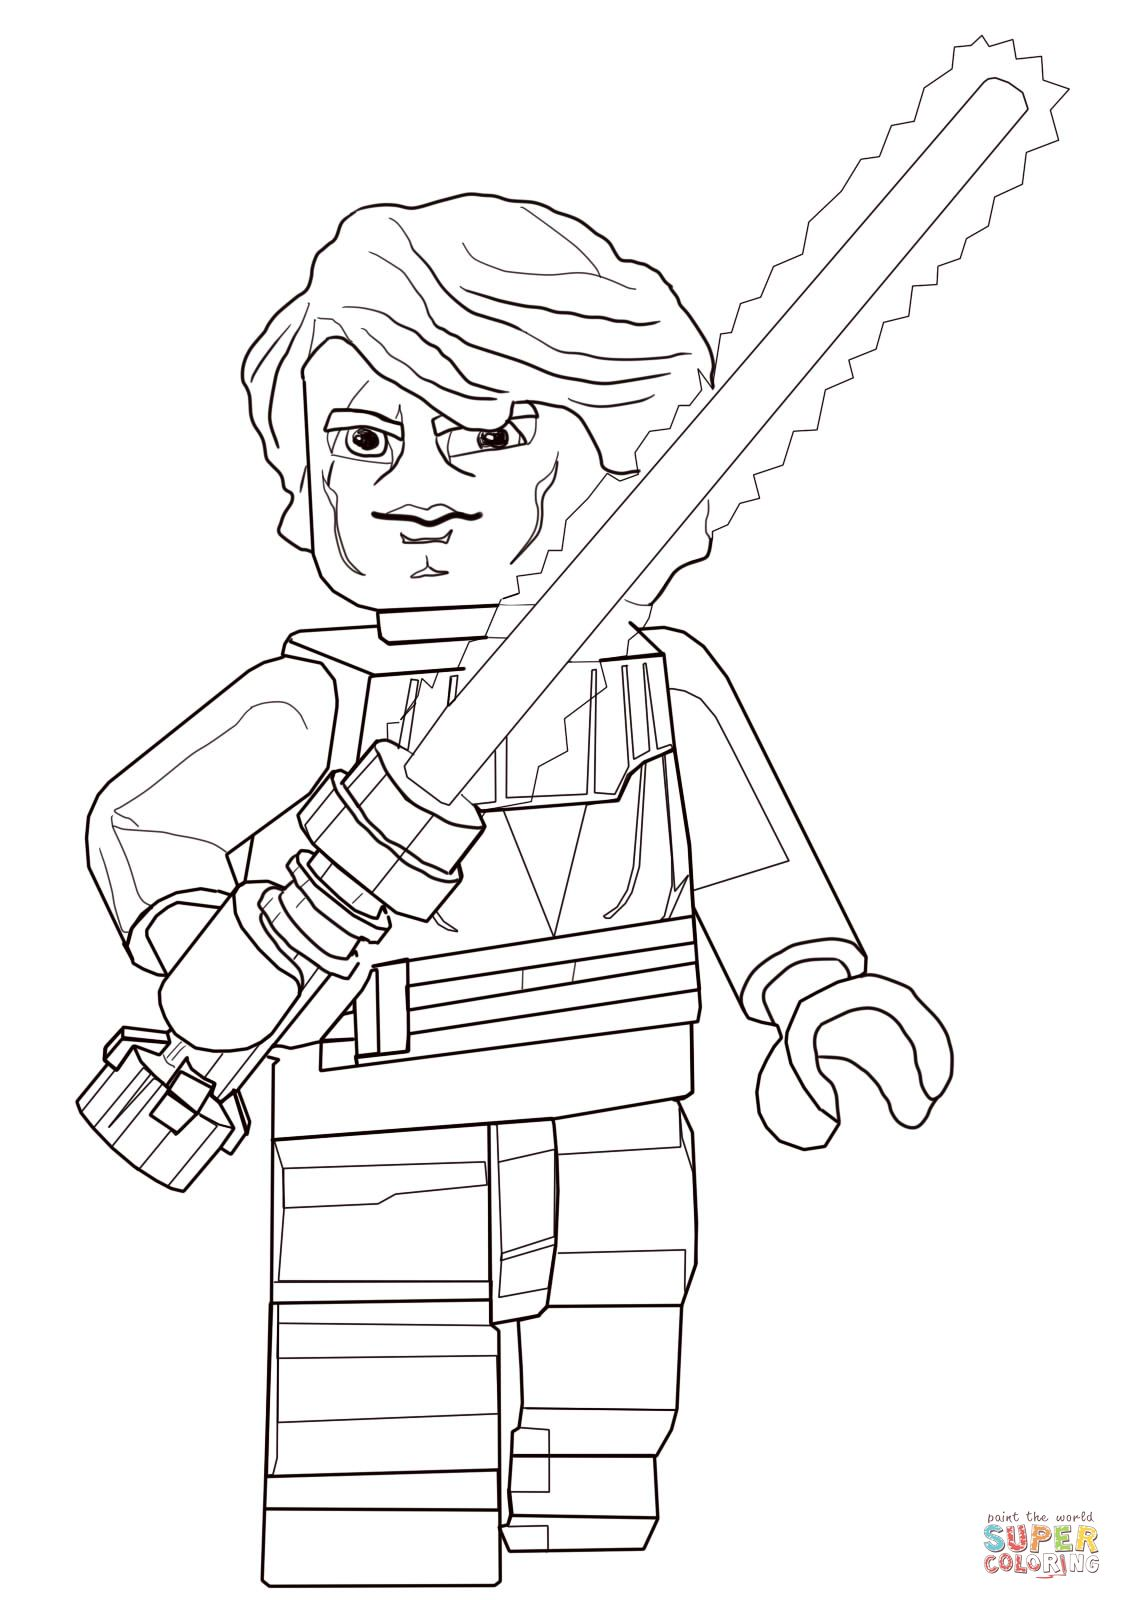 Lego Star Wars Anakin Skywalker coloring page | SuperColoring.com ...